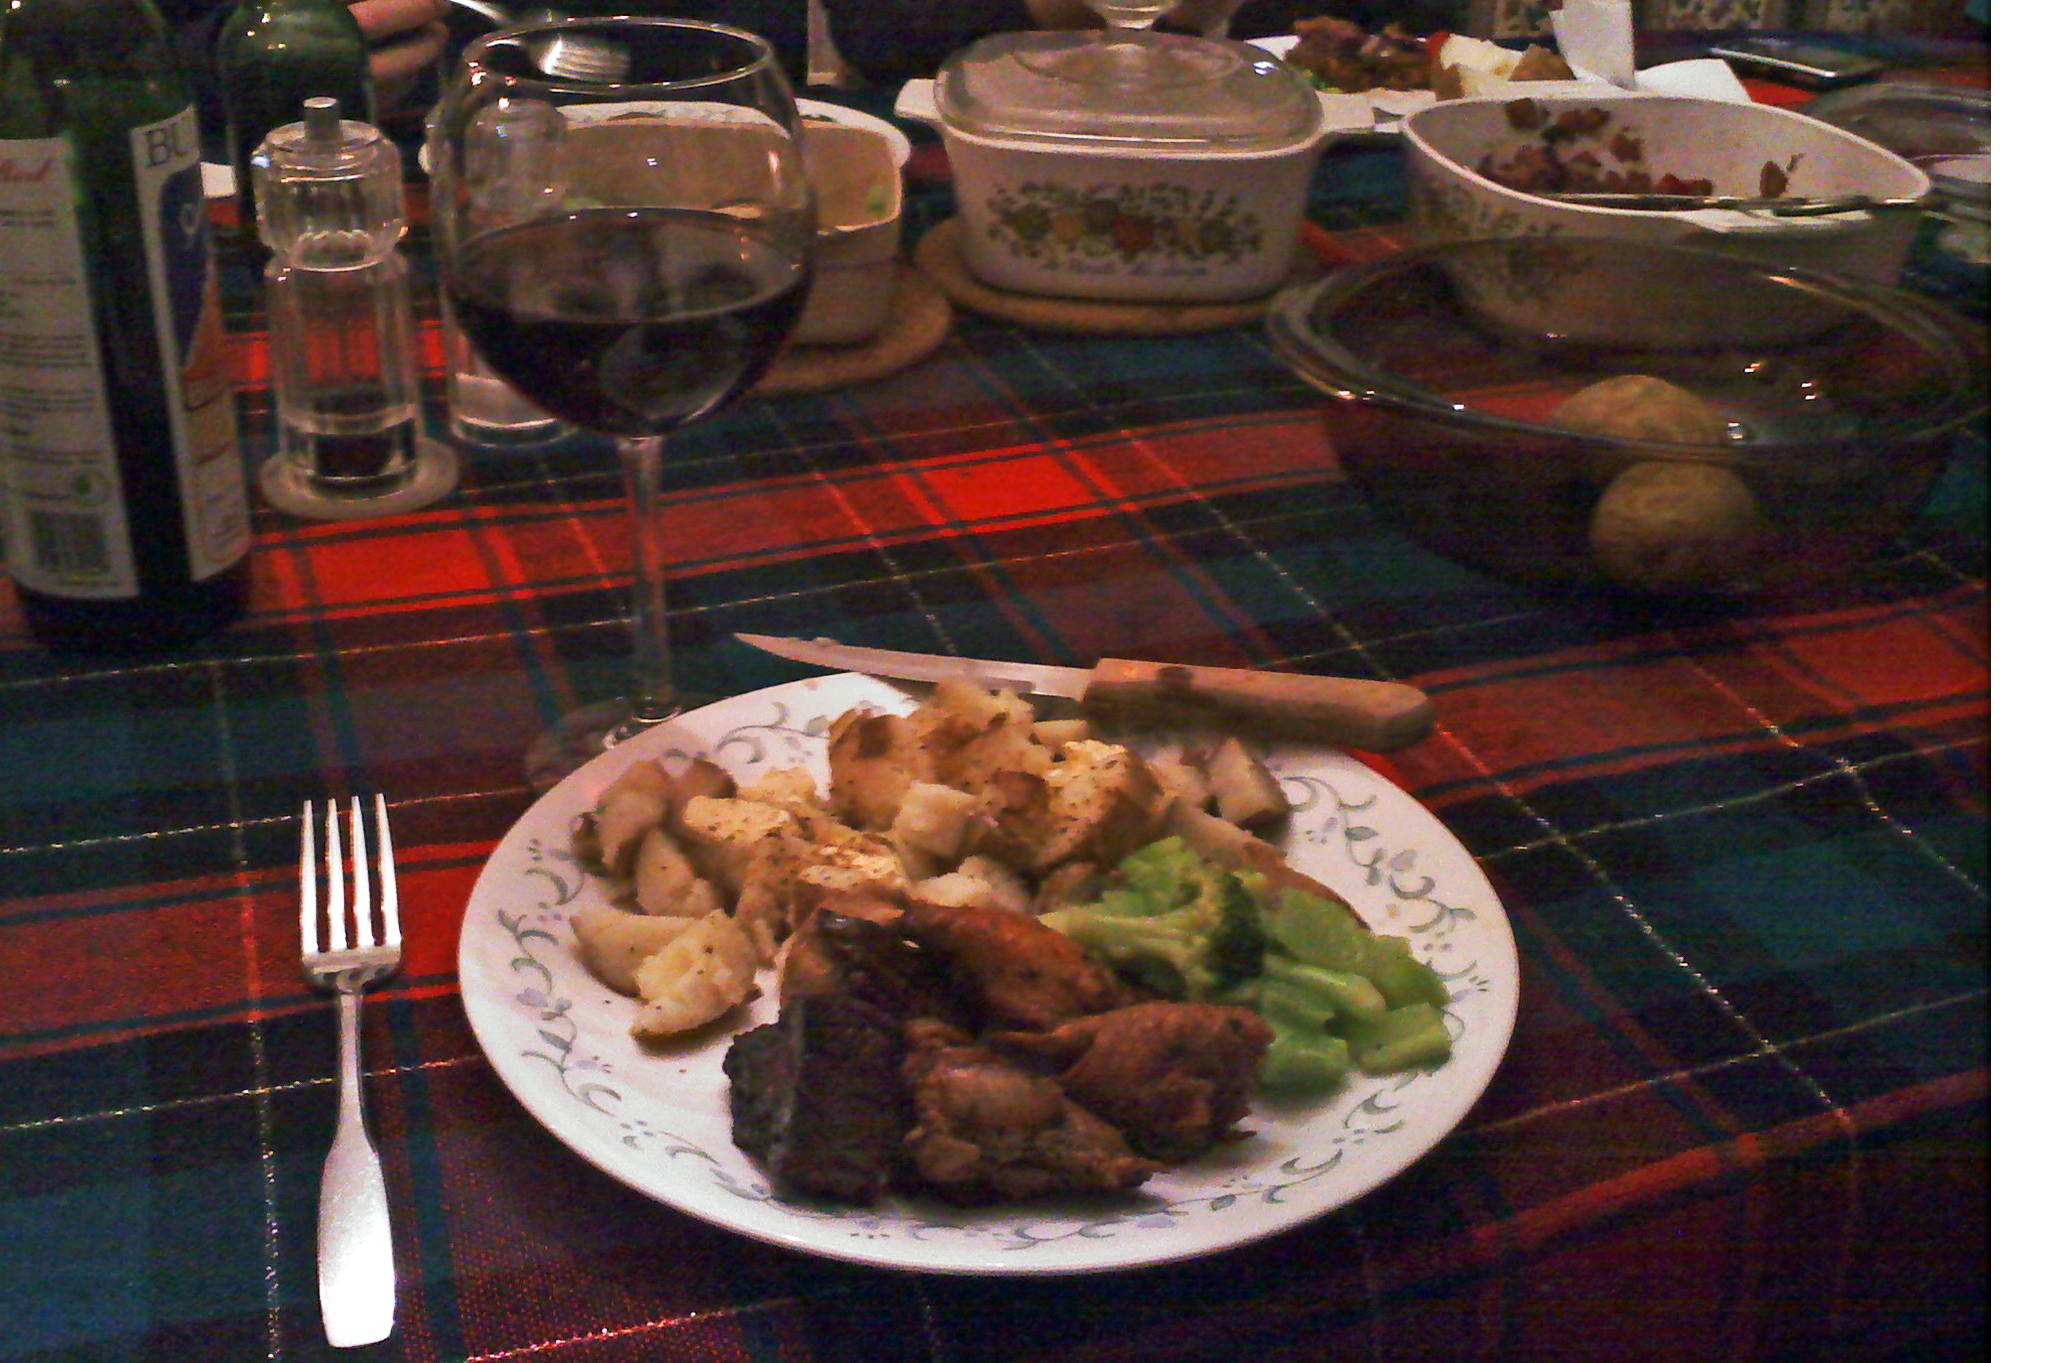 House, Milford, NH :: Teriyaki Chicken, Teriyaki Steak, Baked Potatoes and Butter, Broccoli, Salad, and Red Wine